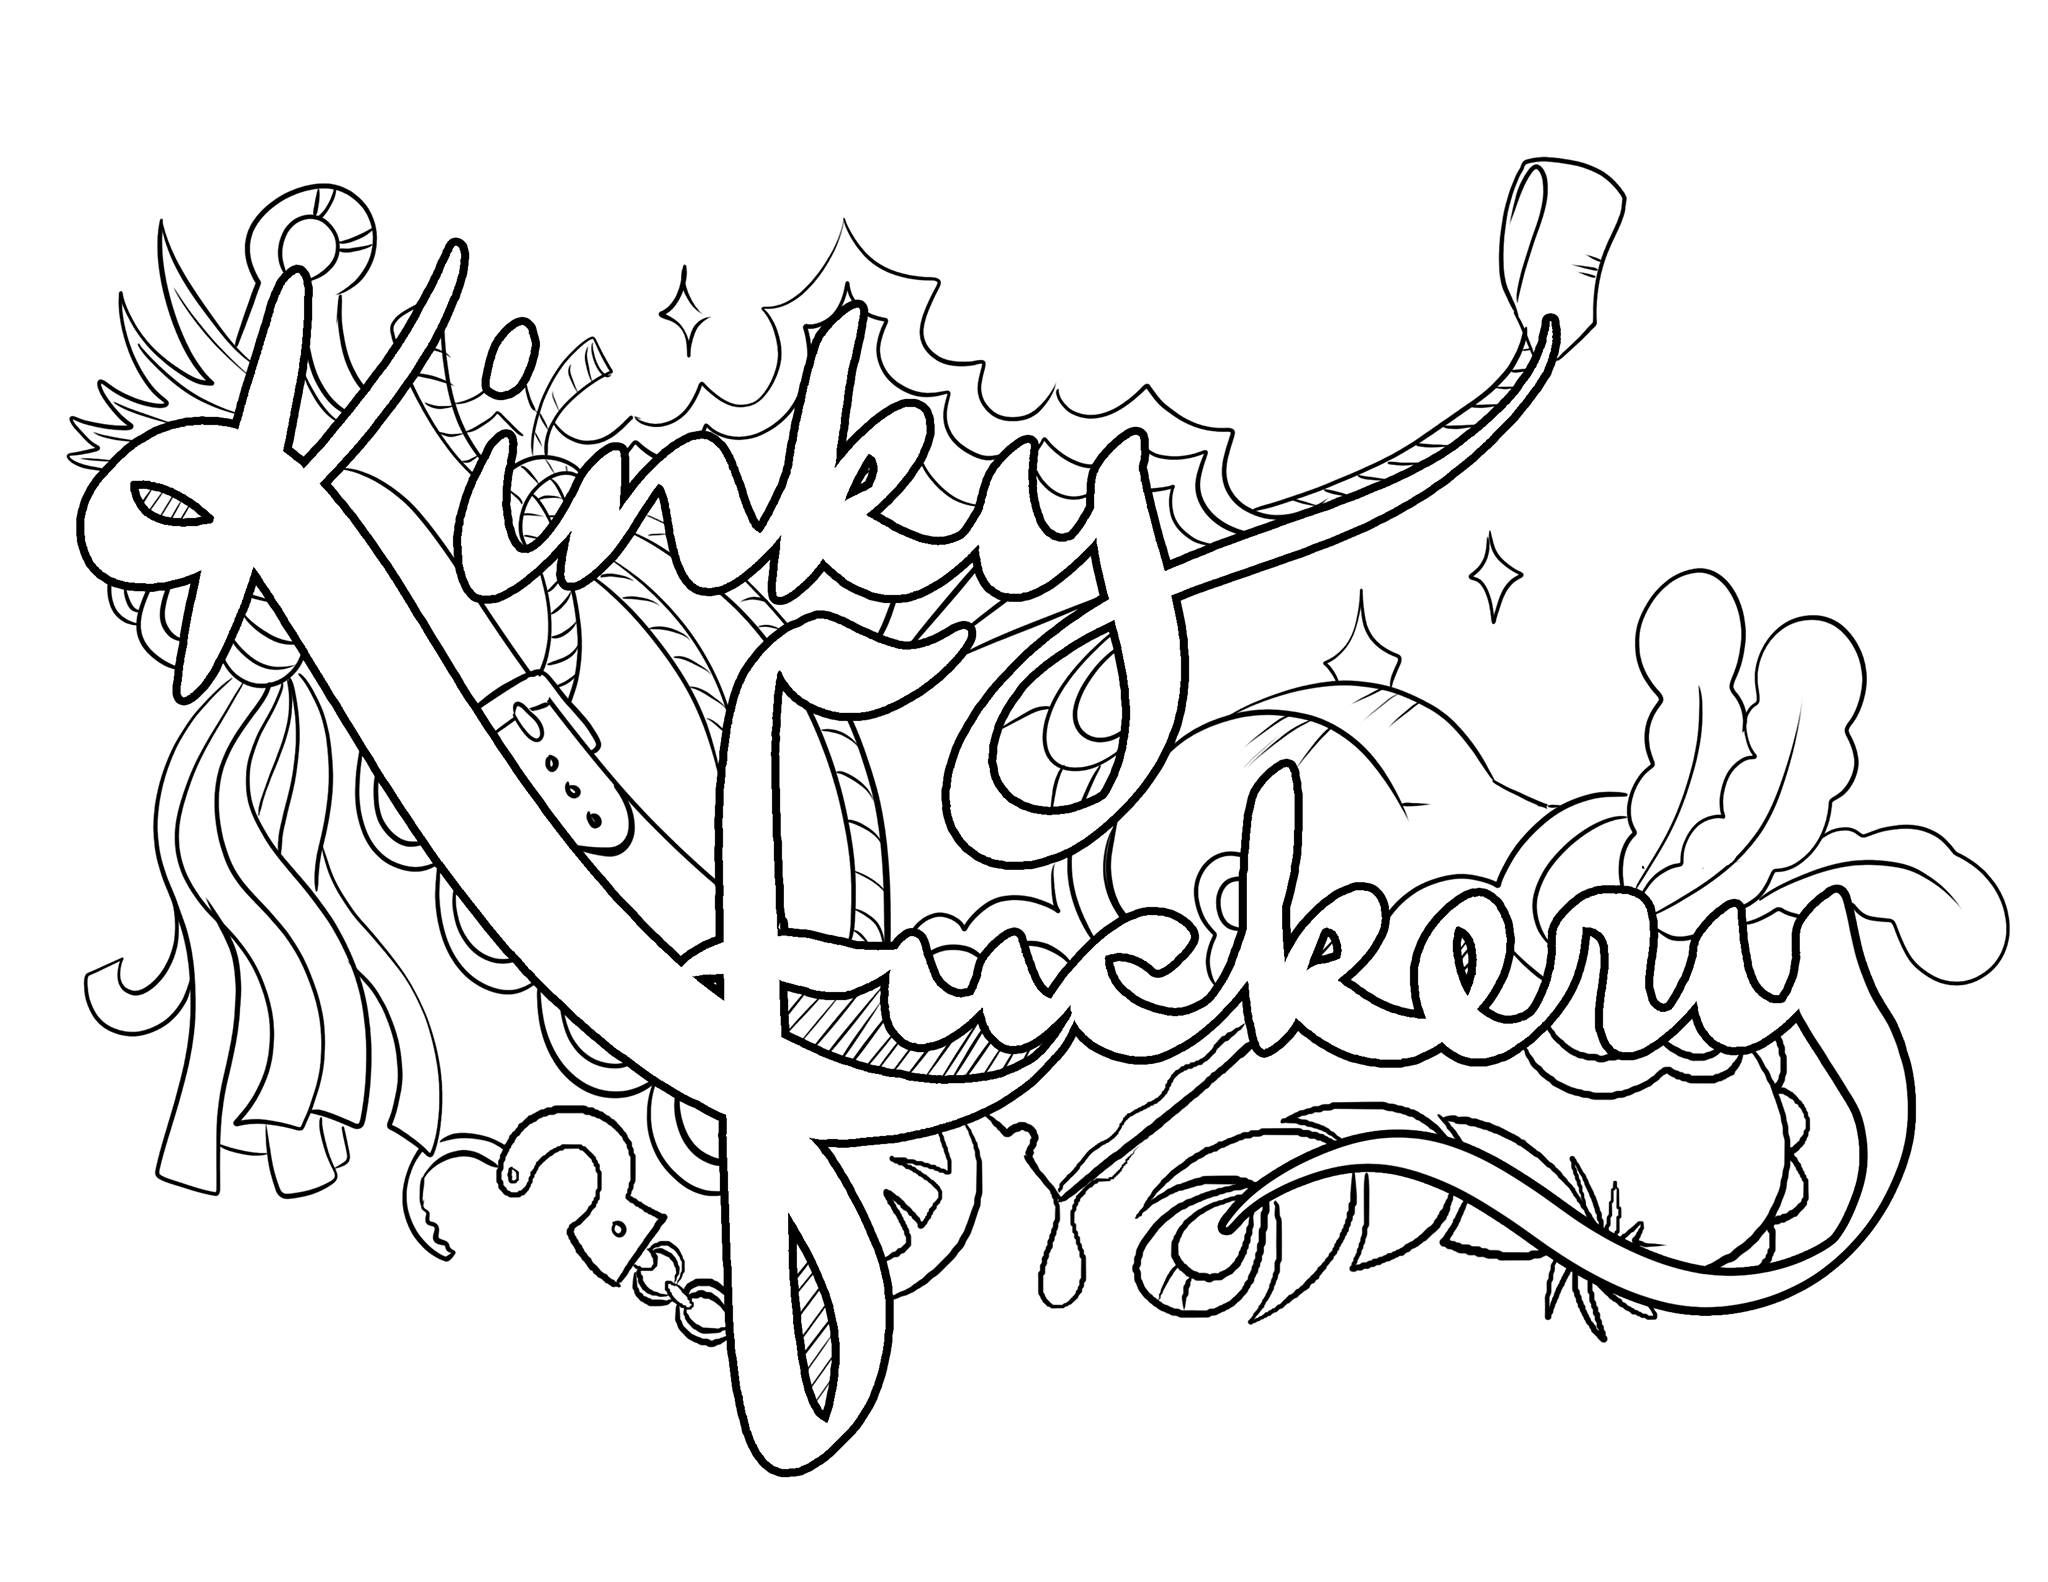 This is a picture of Impertinent dirty word coloring book